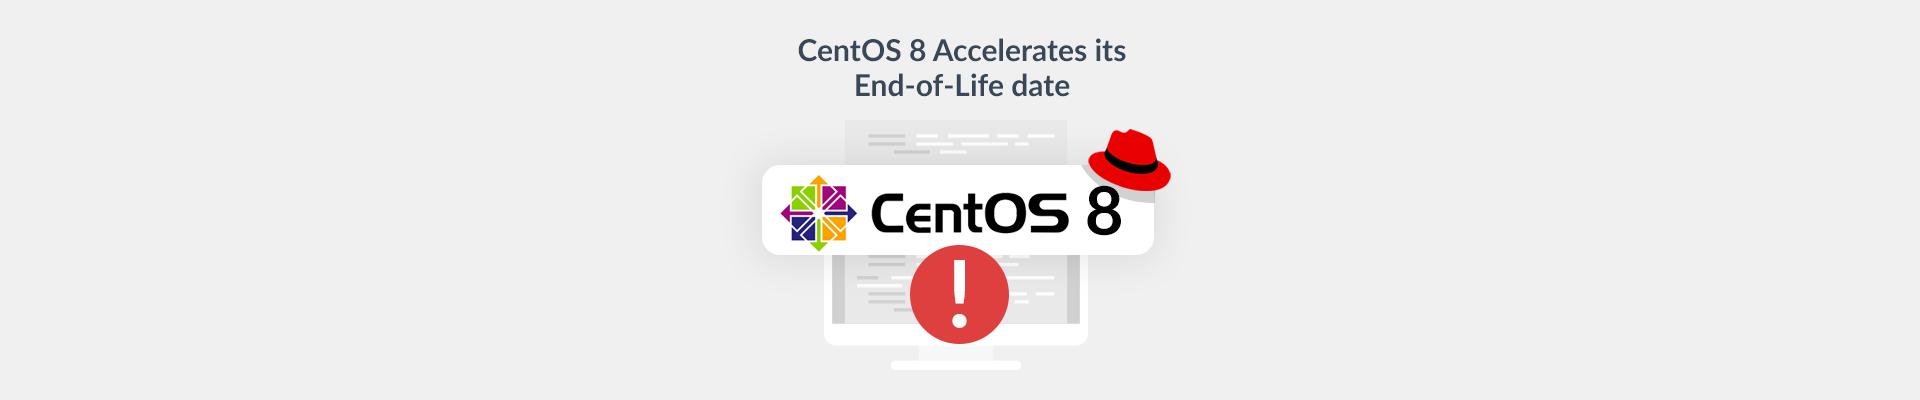 CentOS 8 Announces Early End-of-Life Date - Plesk